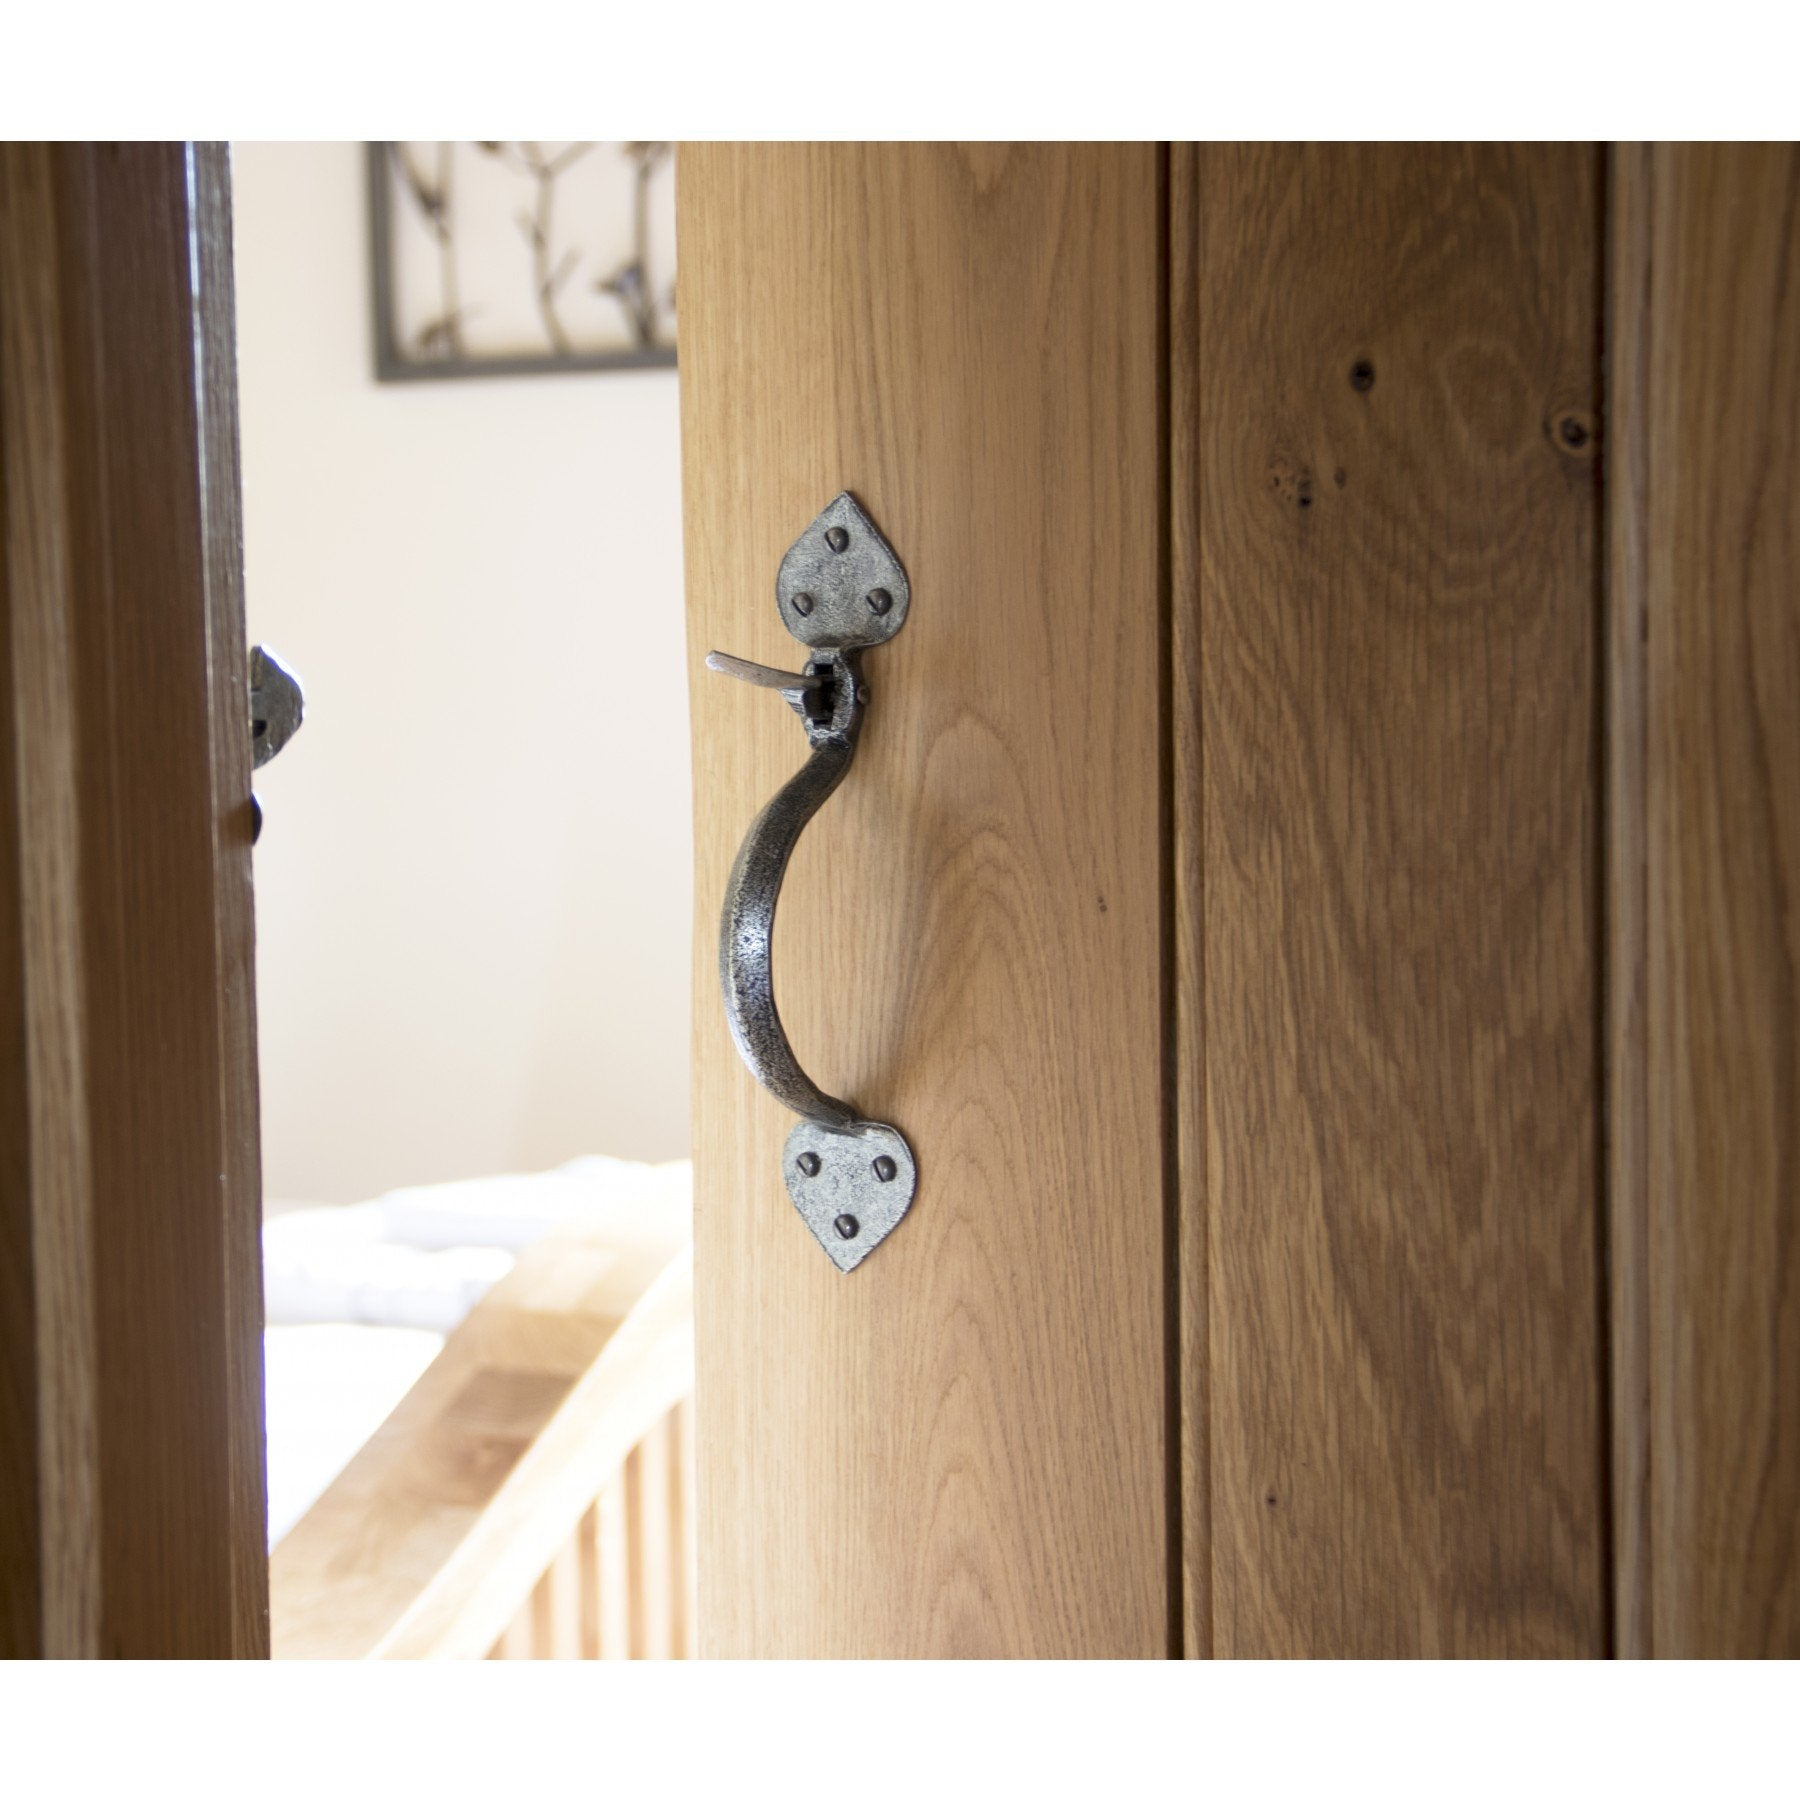 Pewter Gothic Thumblatch - No.42 Interiors